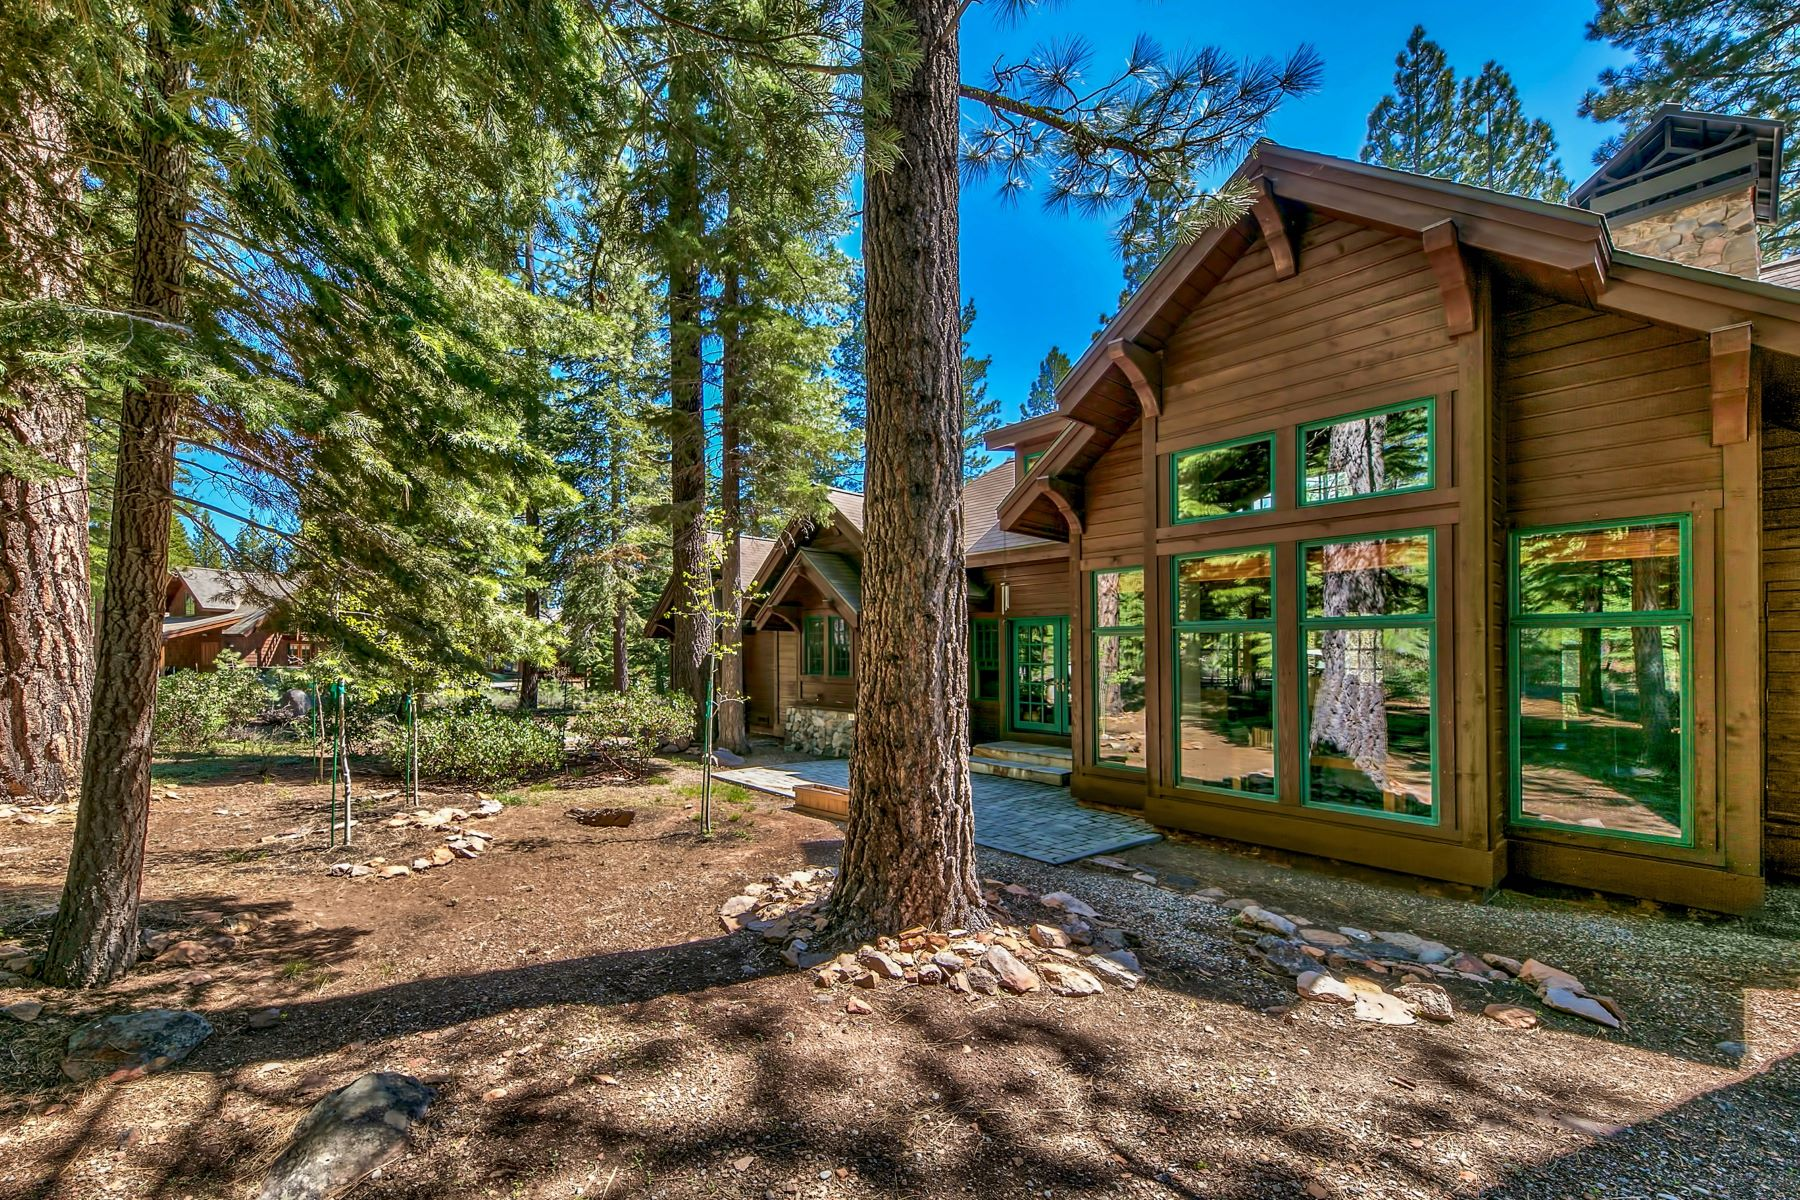 Additional photo for property listing at 8441 Lahontan Drive, Truckee, CA 8441 Lahontan Drive Truckee, California 96161 United States